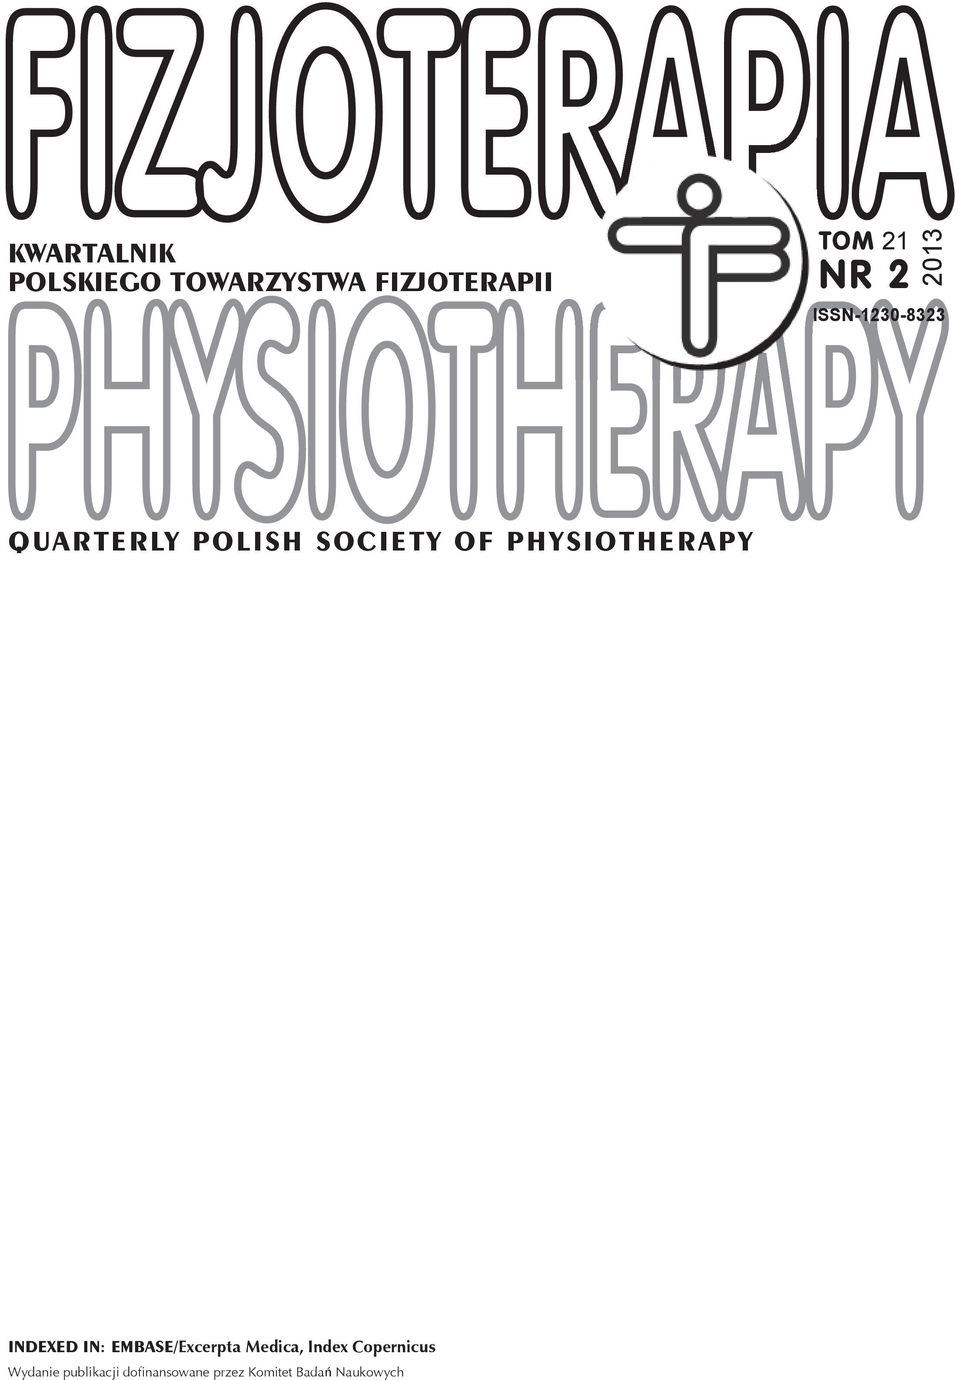 PHYSIOTHERAPY INDEXED IN: EMBASE/Excerpta Medica, Index